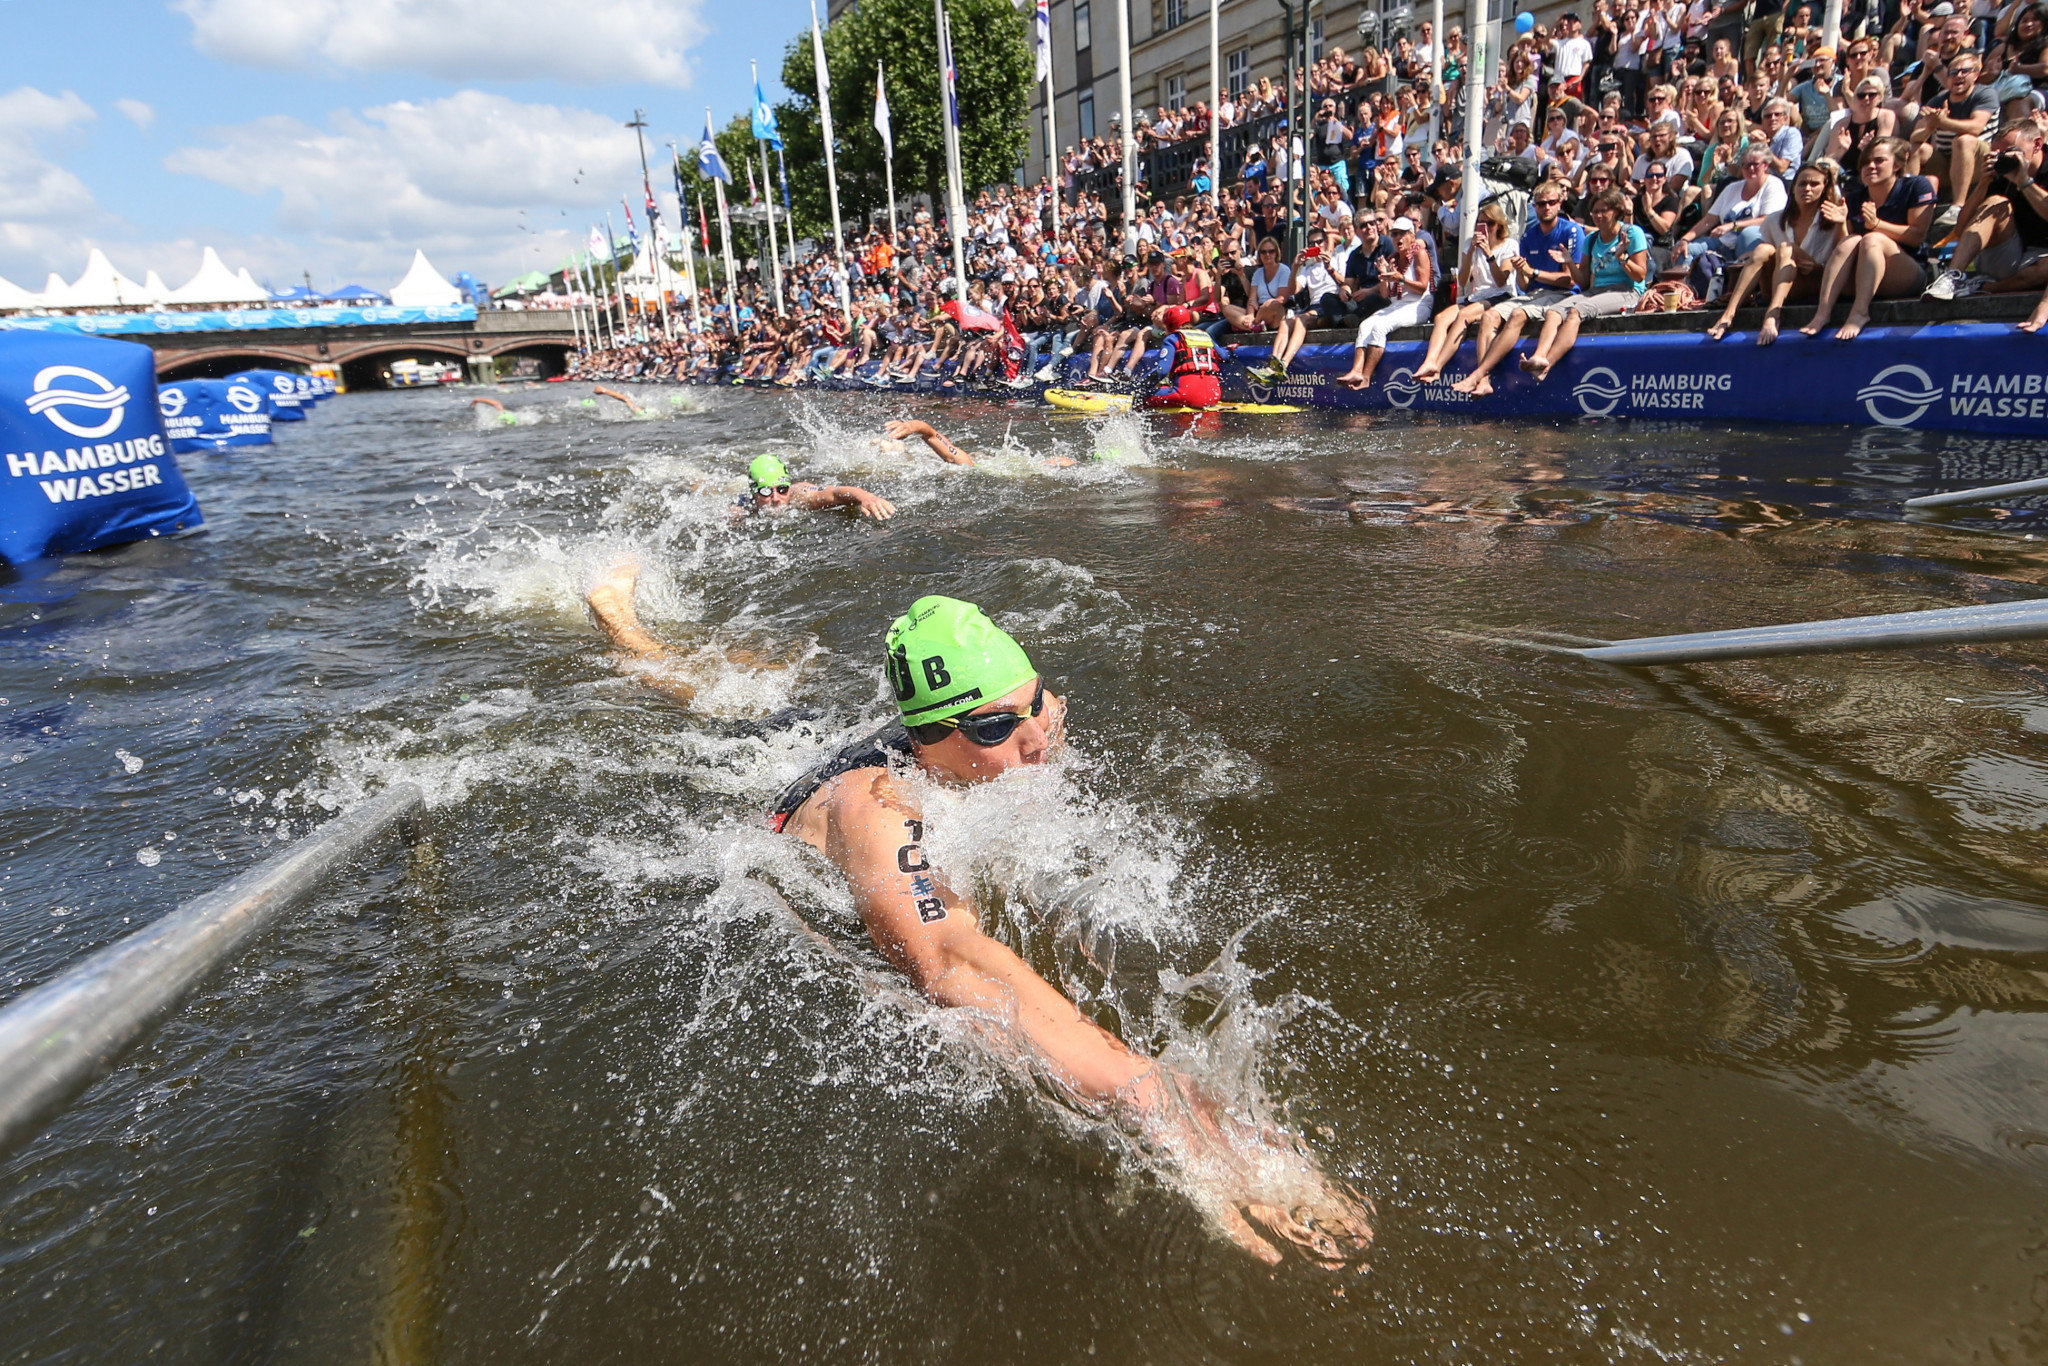 Tokyo 2020 and the ITU have announced their triathlon courses ©Getty Images